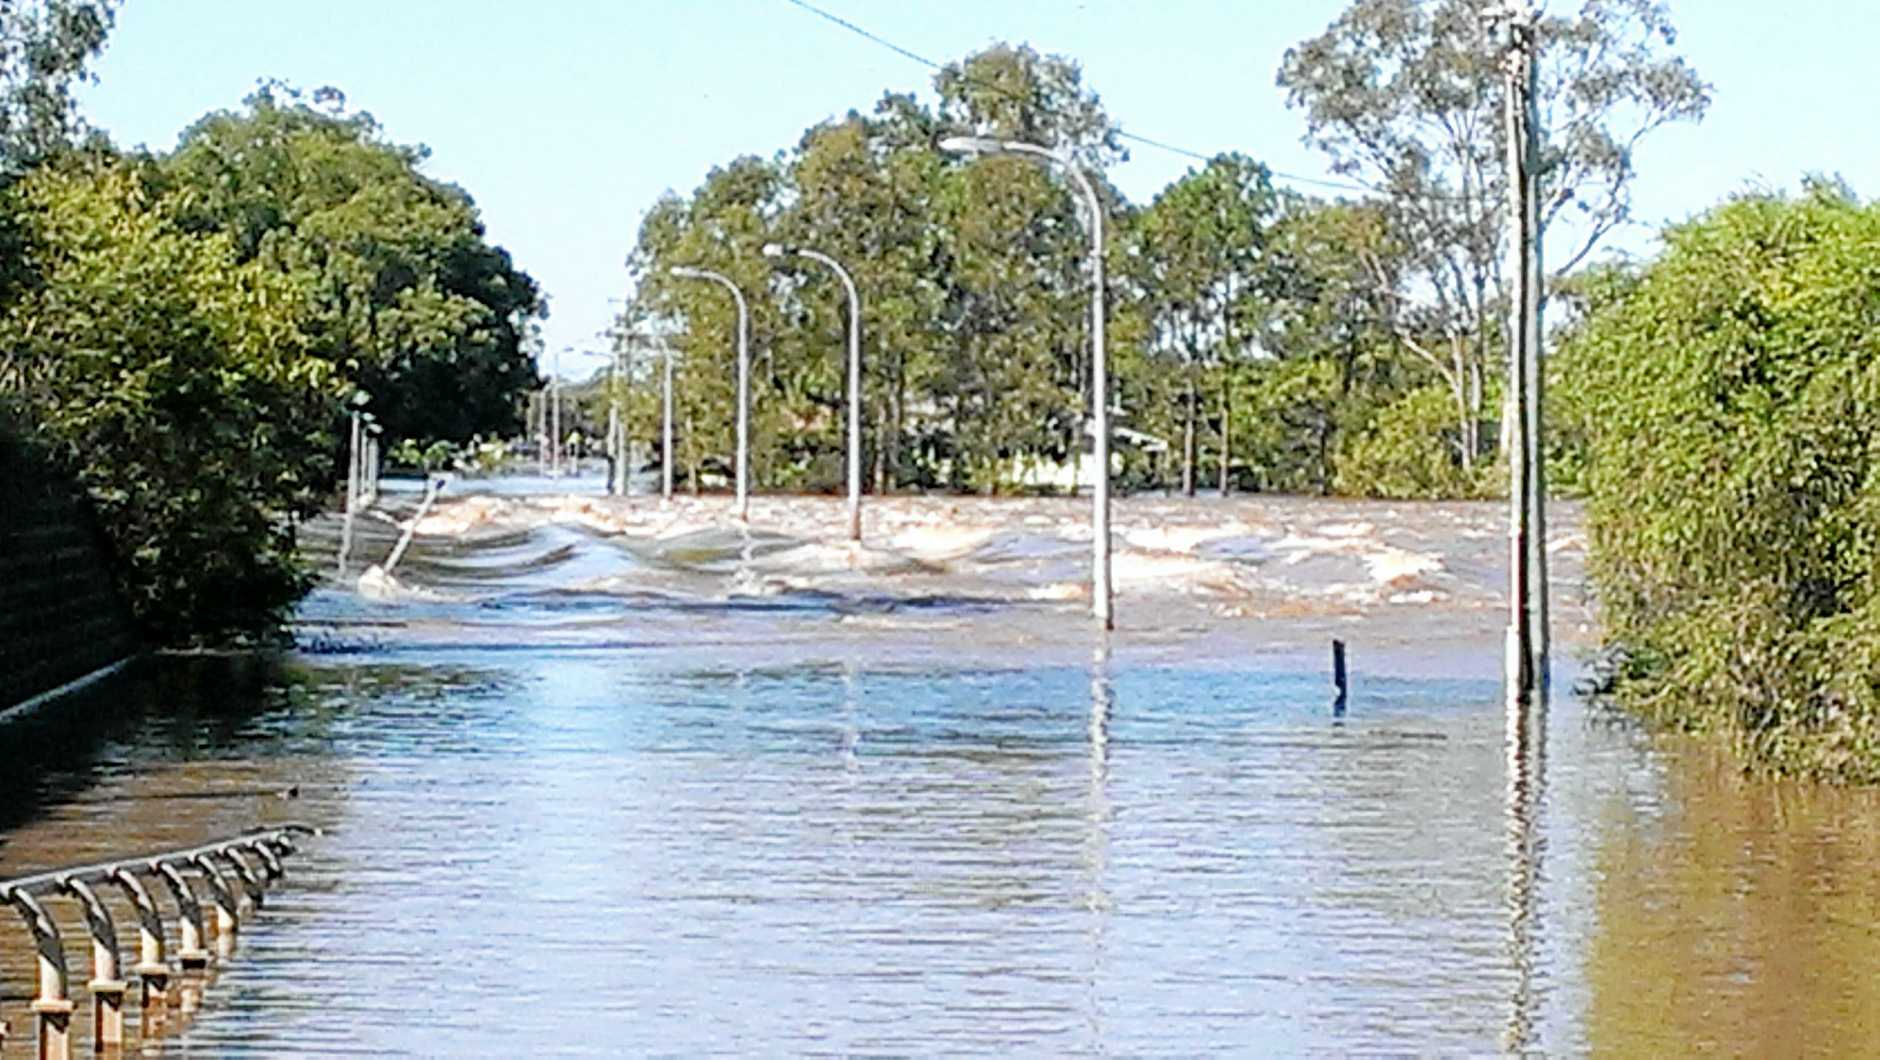 FLOOD PROTECTION: Funding for the Granville Hockey Club will allow it to support the community during natural disasters, which include major floods.